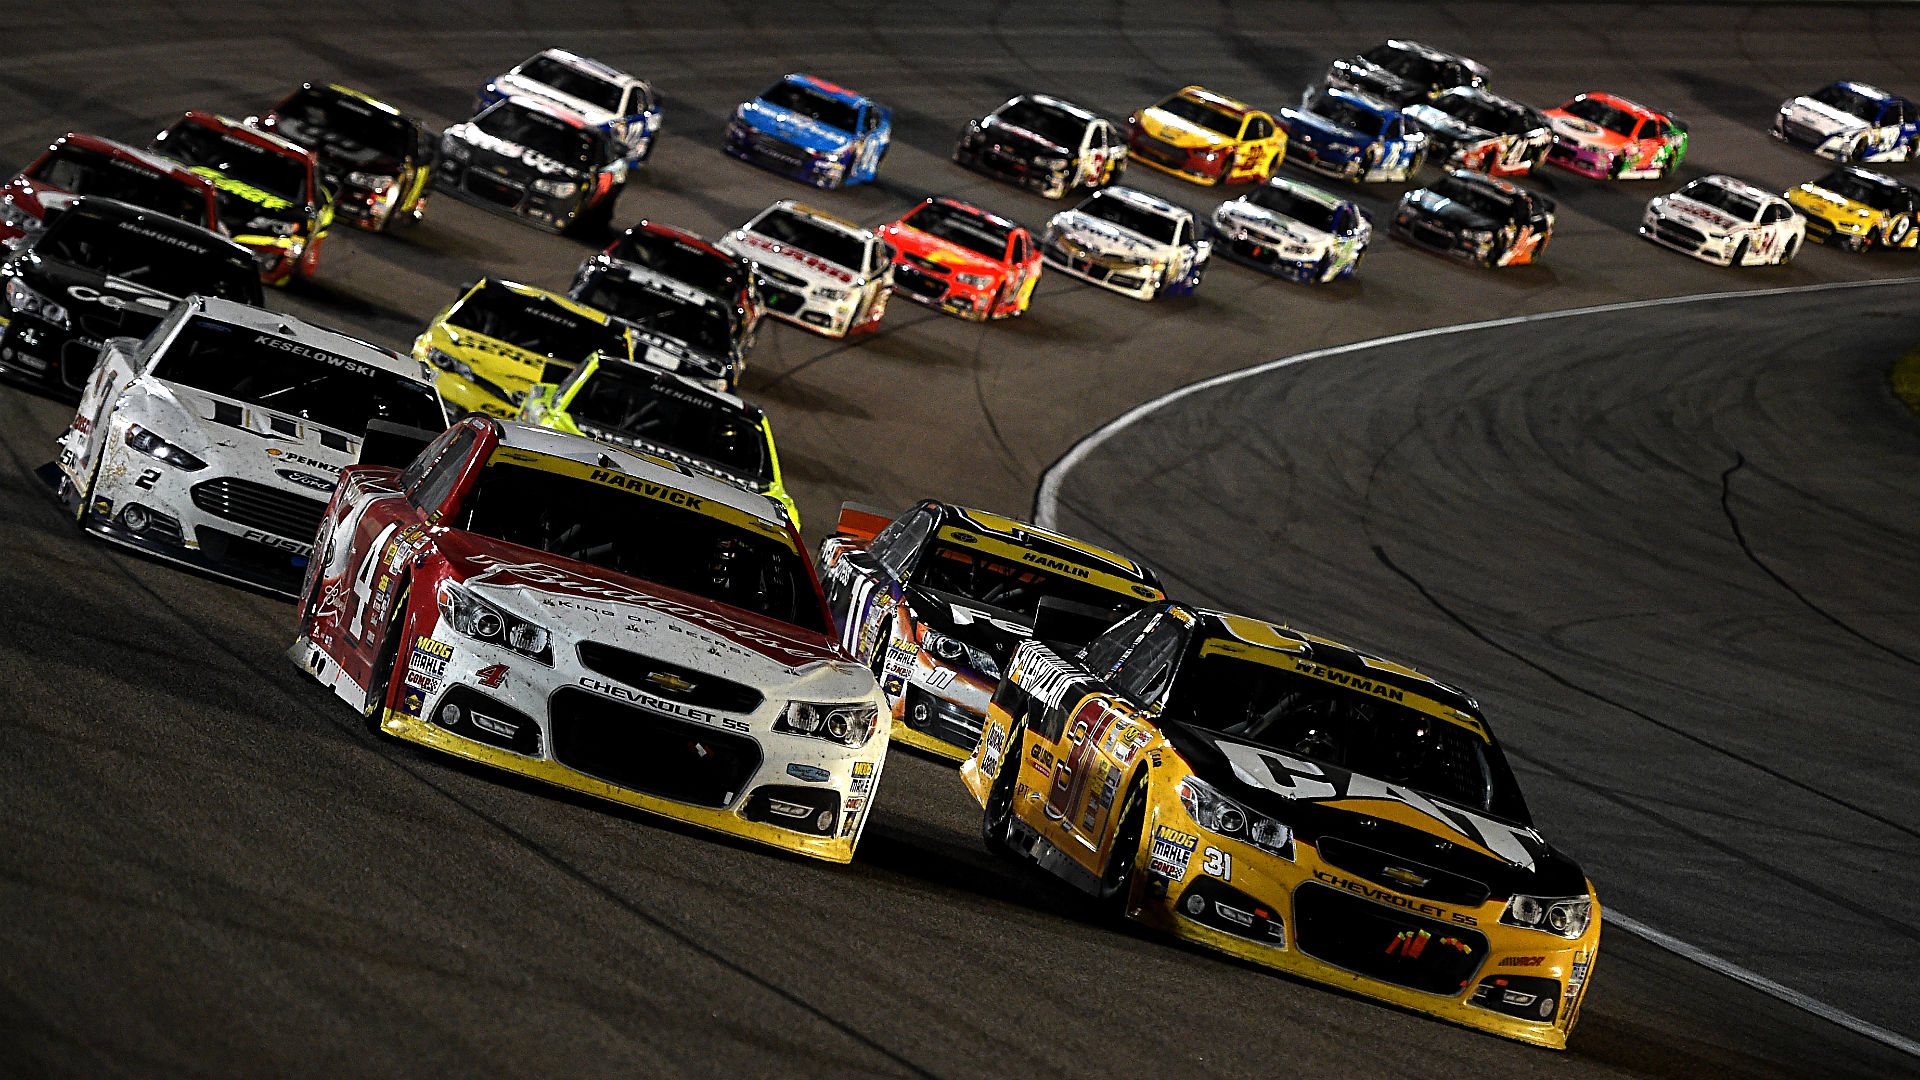 NASCAR to implement new rules packages for several tracks this season